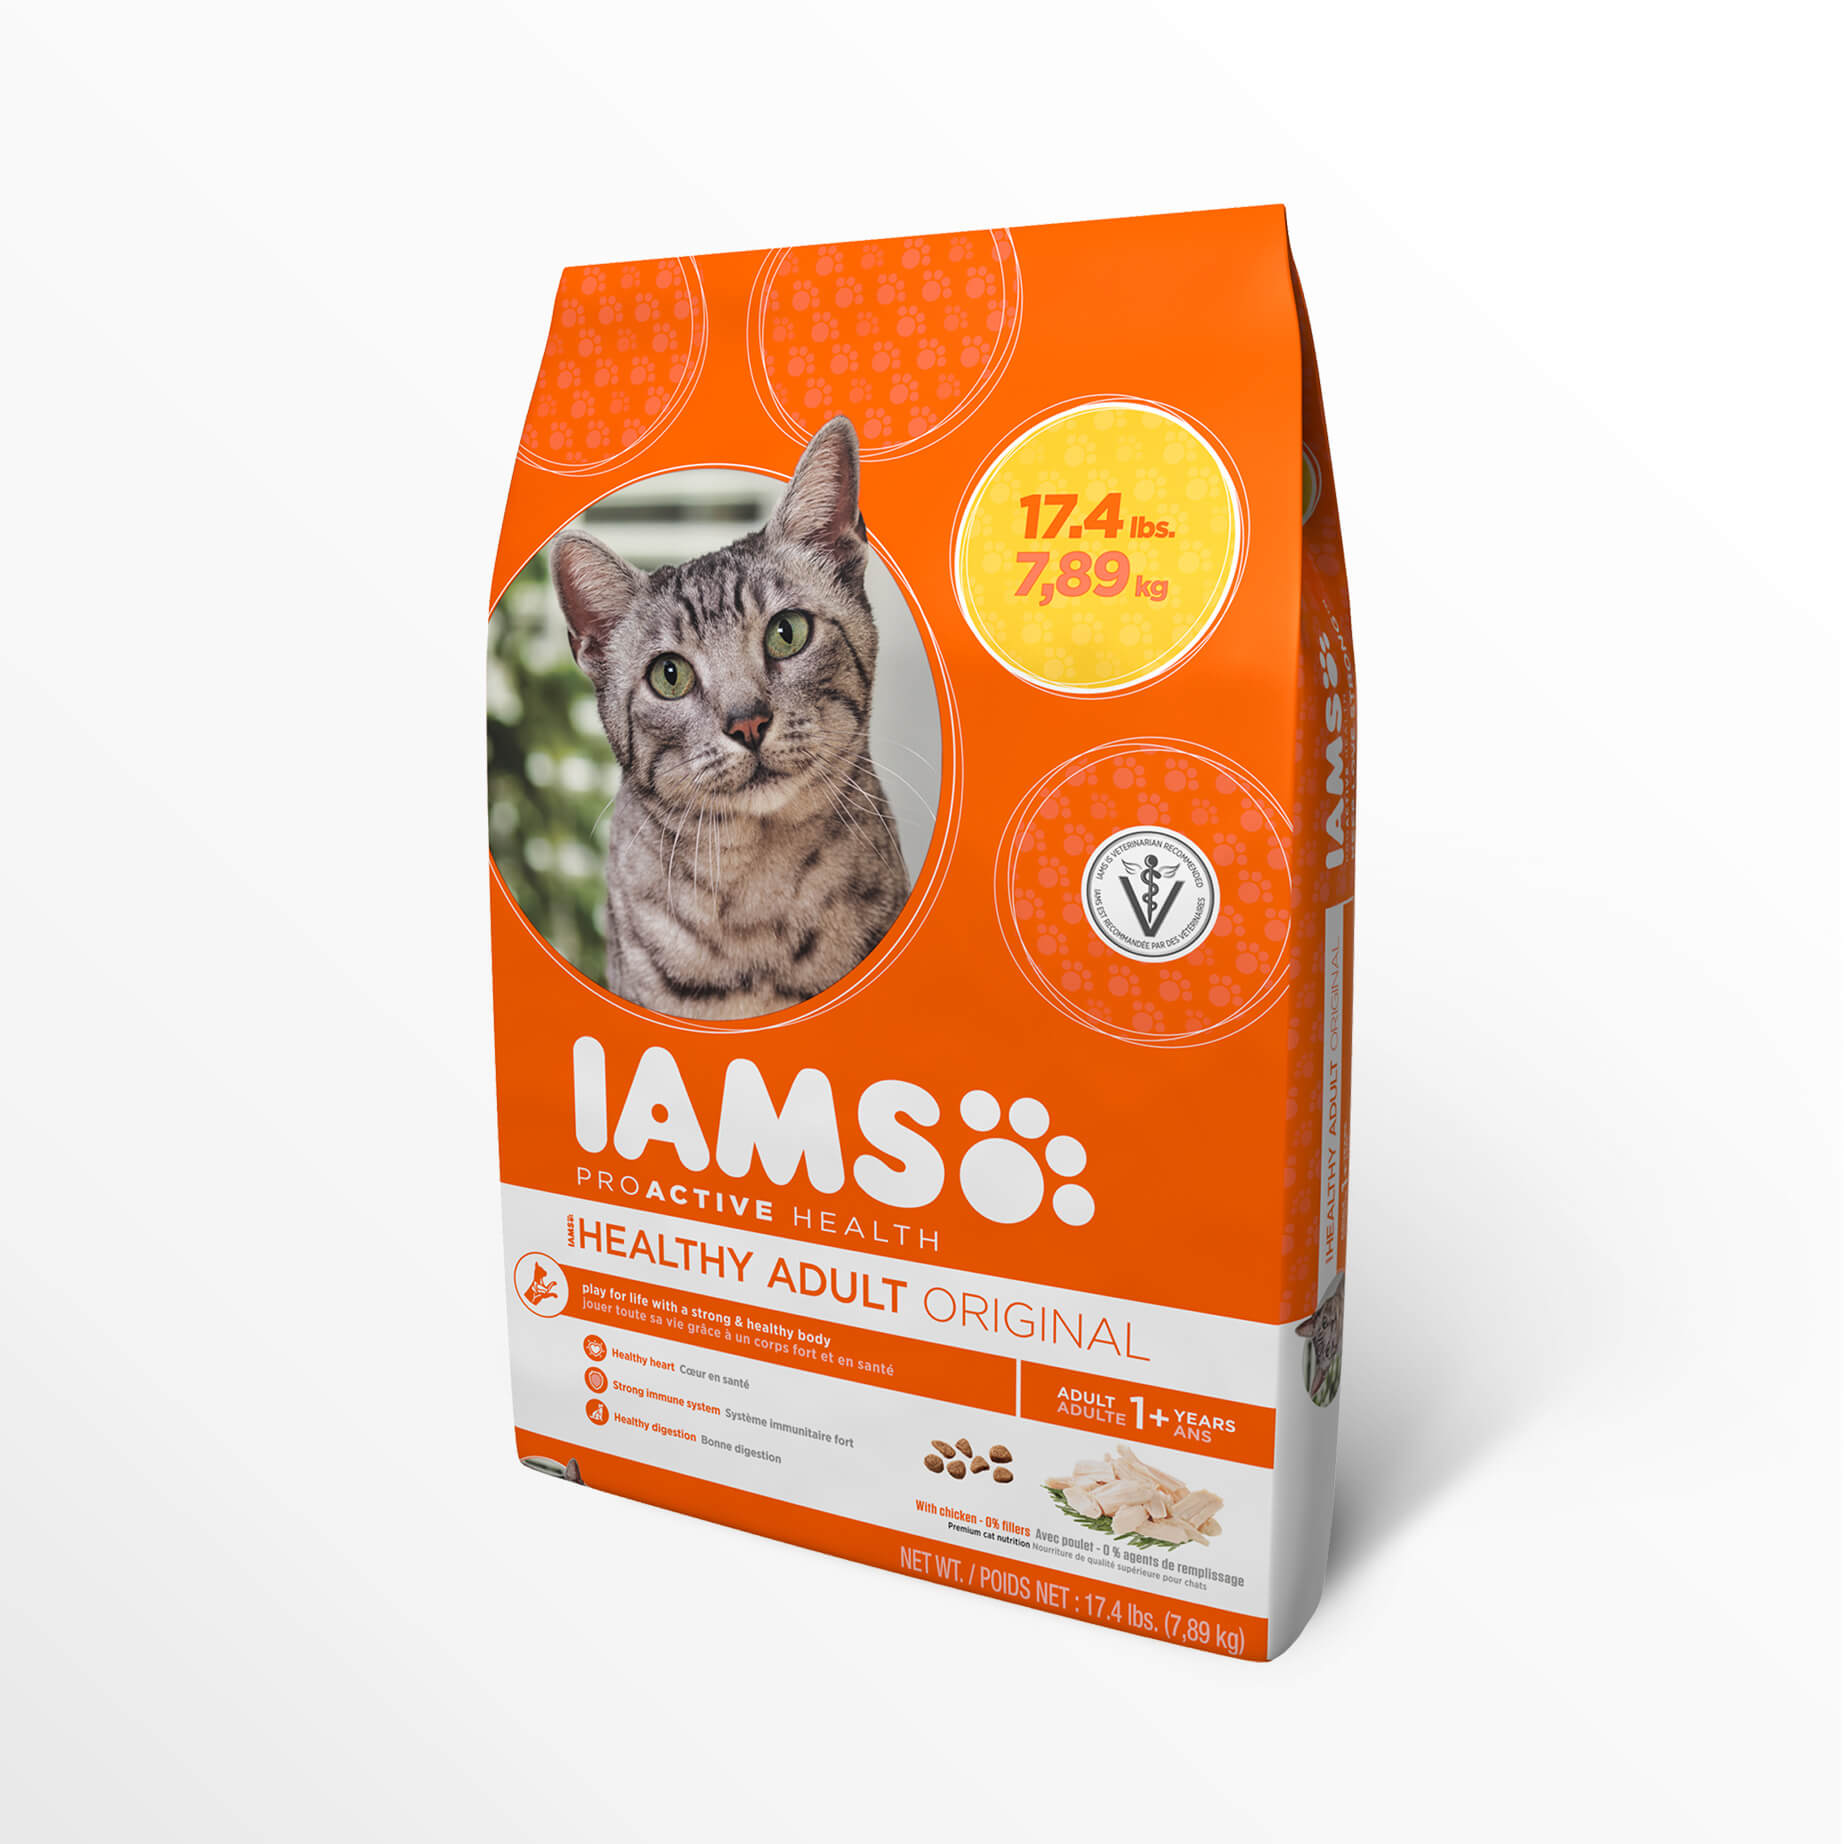 Purina Beyond Cat Food >> Compare Life's Abundance Premium Cat Food to Iams ProActive Health Original